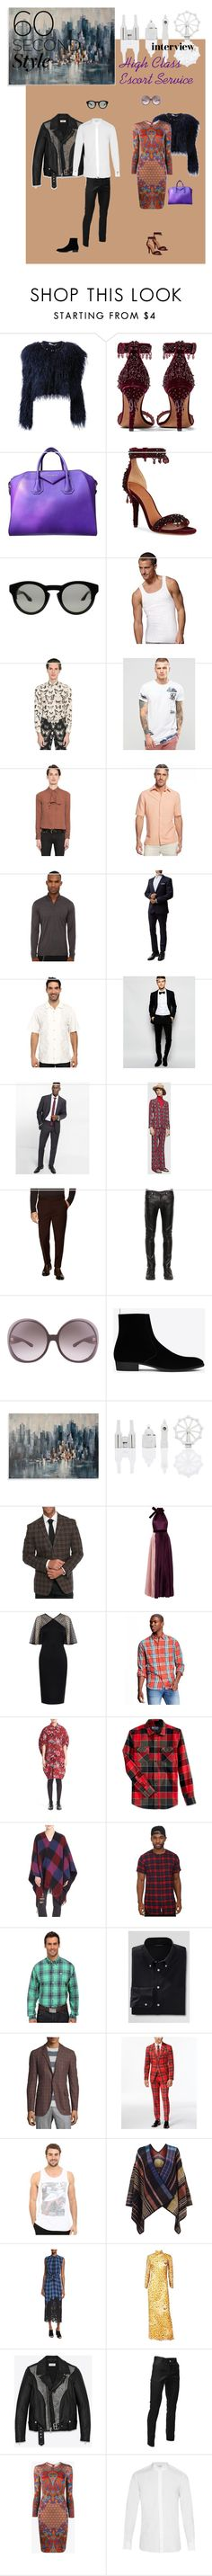 """Gracious Companions Escort Service"" by tess-jr ❤ liked on Polyvore featuring Givenchy, Hanes, Alexander McQueen, Sik Silk, BLK DNM, Tasso Elba, The Kooples, Sandro, Tommy Bahama and Number Eight Savile Row"